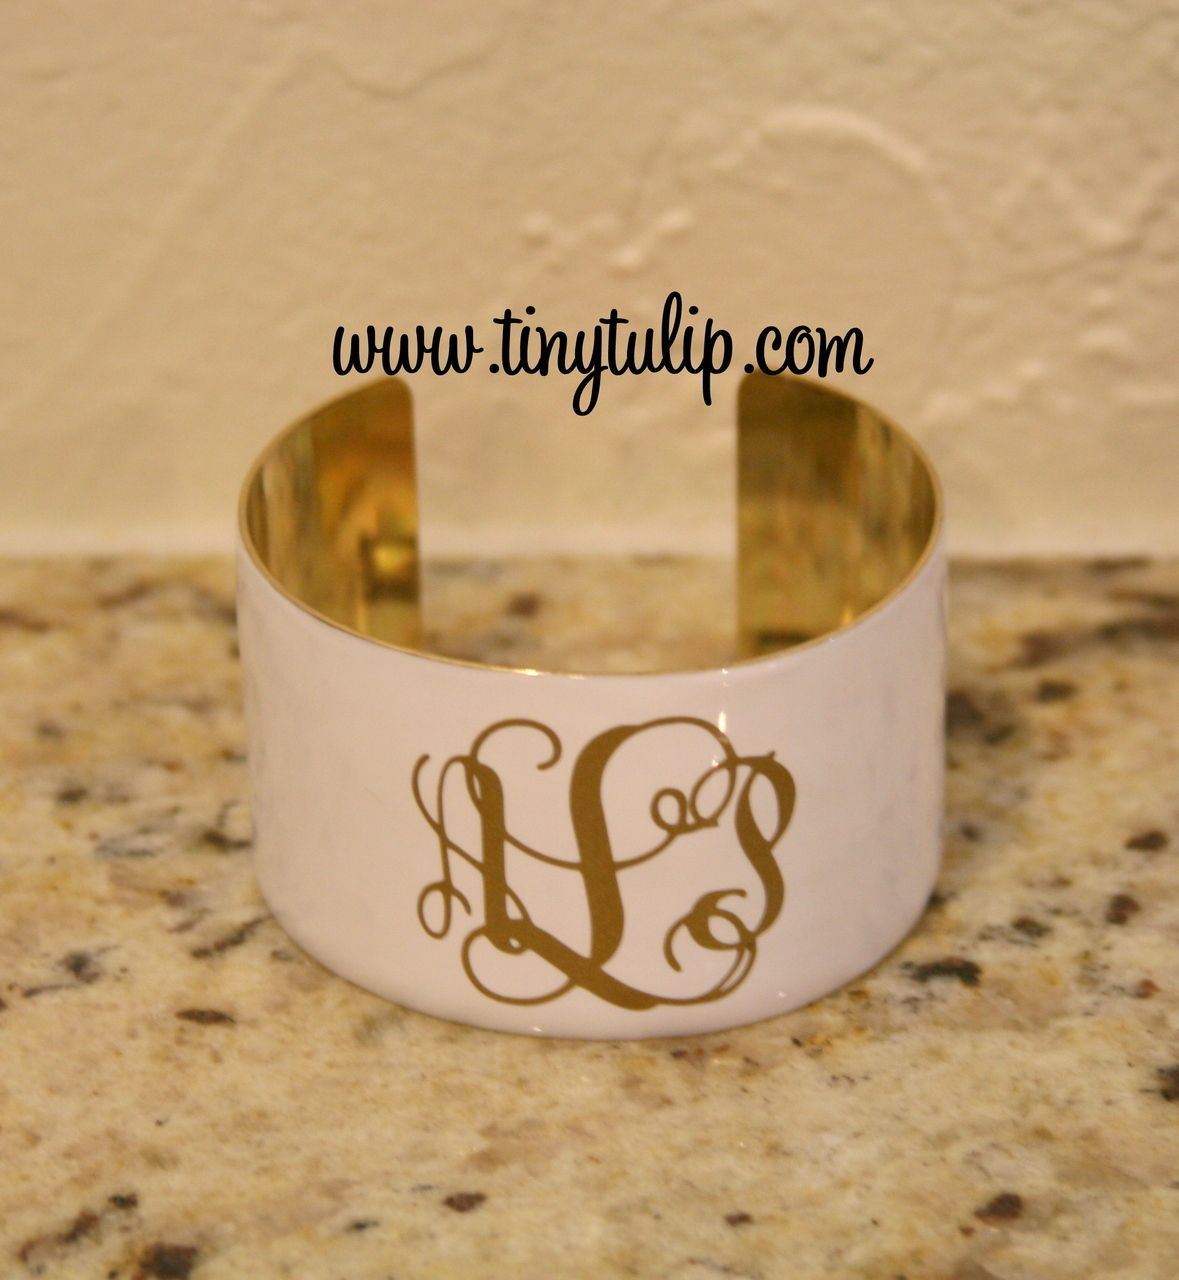 tinytulip.com - Monogrammed Enameled Cuff Bracelet Free Shipping, $32.50 (http://www.tinytulip.com/monogrammed-enameled-cuff-bracelet-free-shipping)